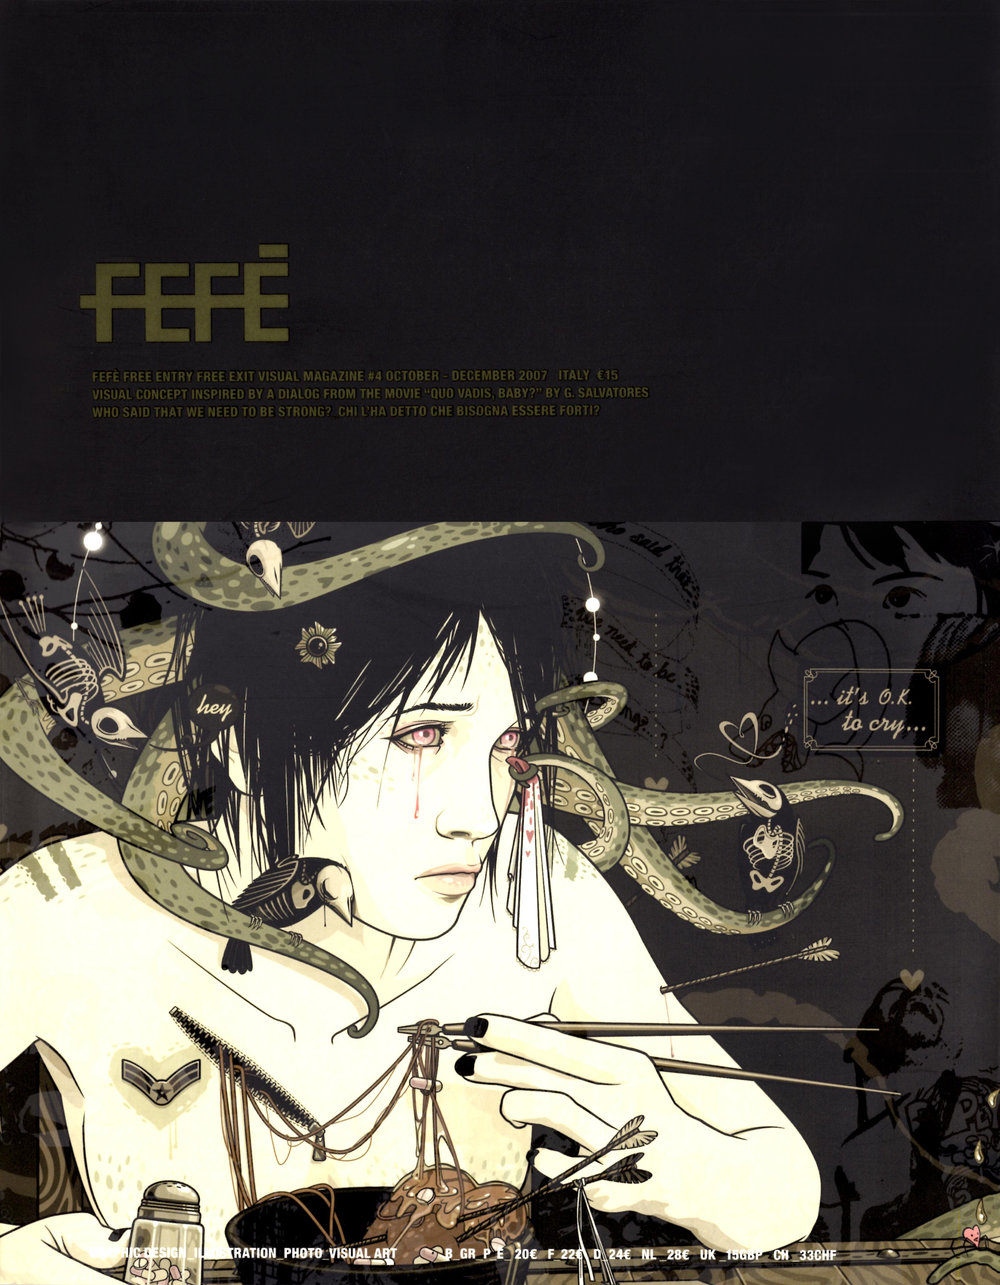 Fefe Mag #4 Oct-Dec 2007.jpg